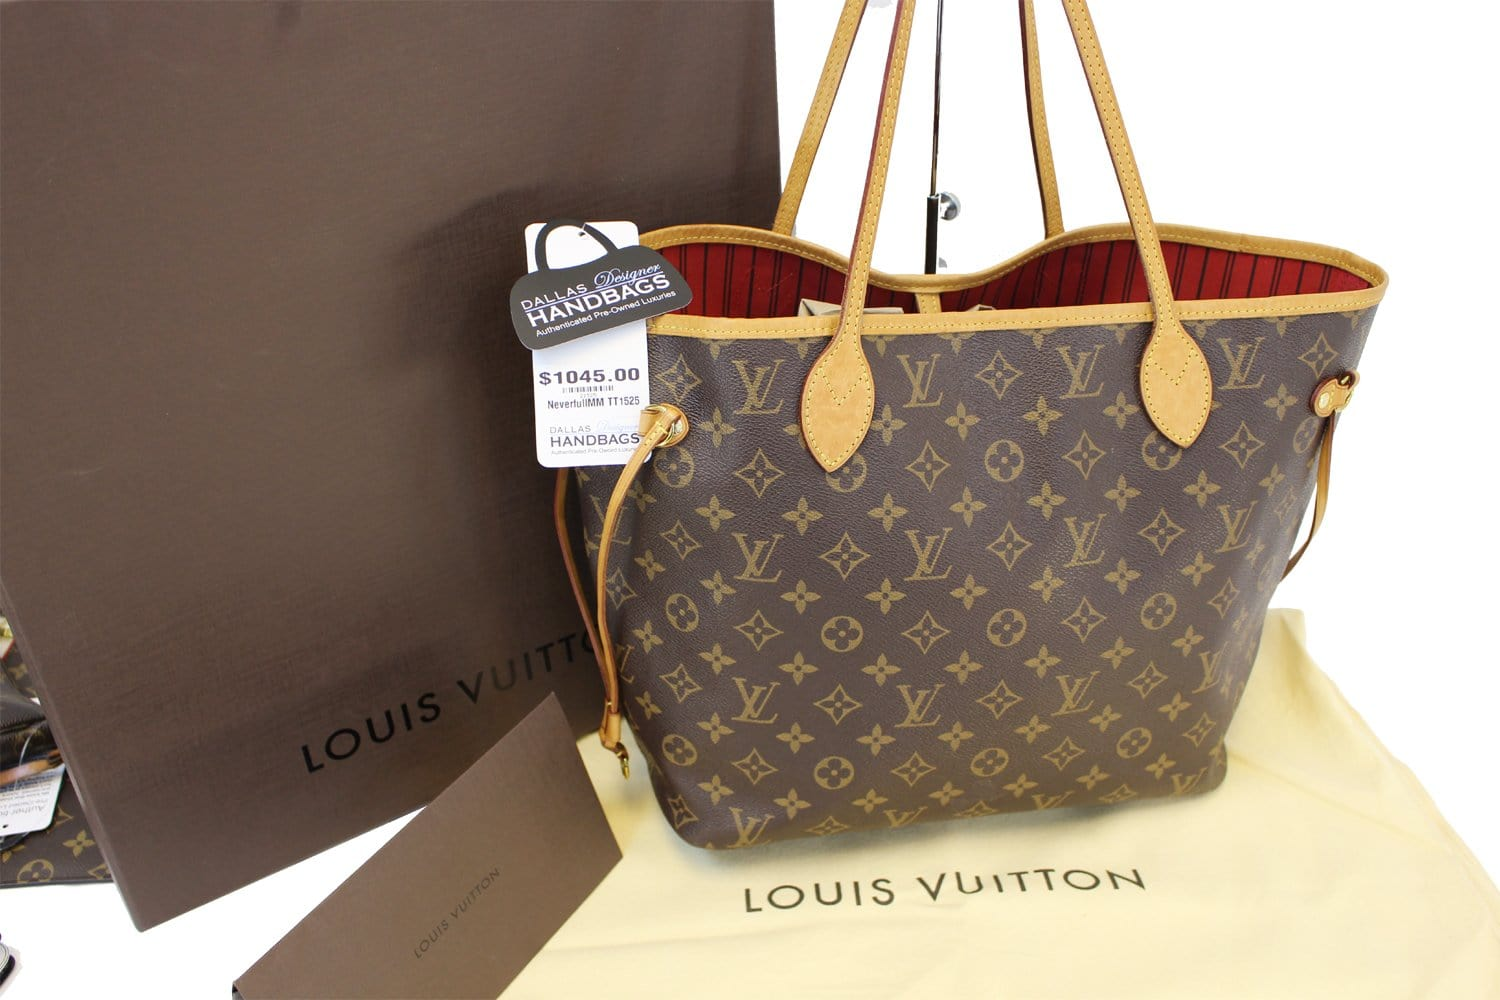 79f8e6c52e150 Authentic LOUIS VUITTON Monogram Canvas Red Neverfull MM Tote Bag TT1525